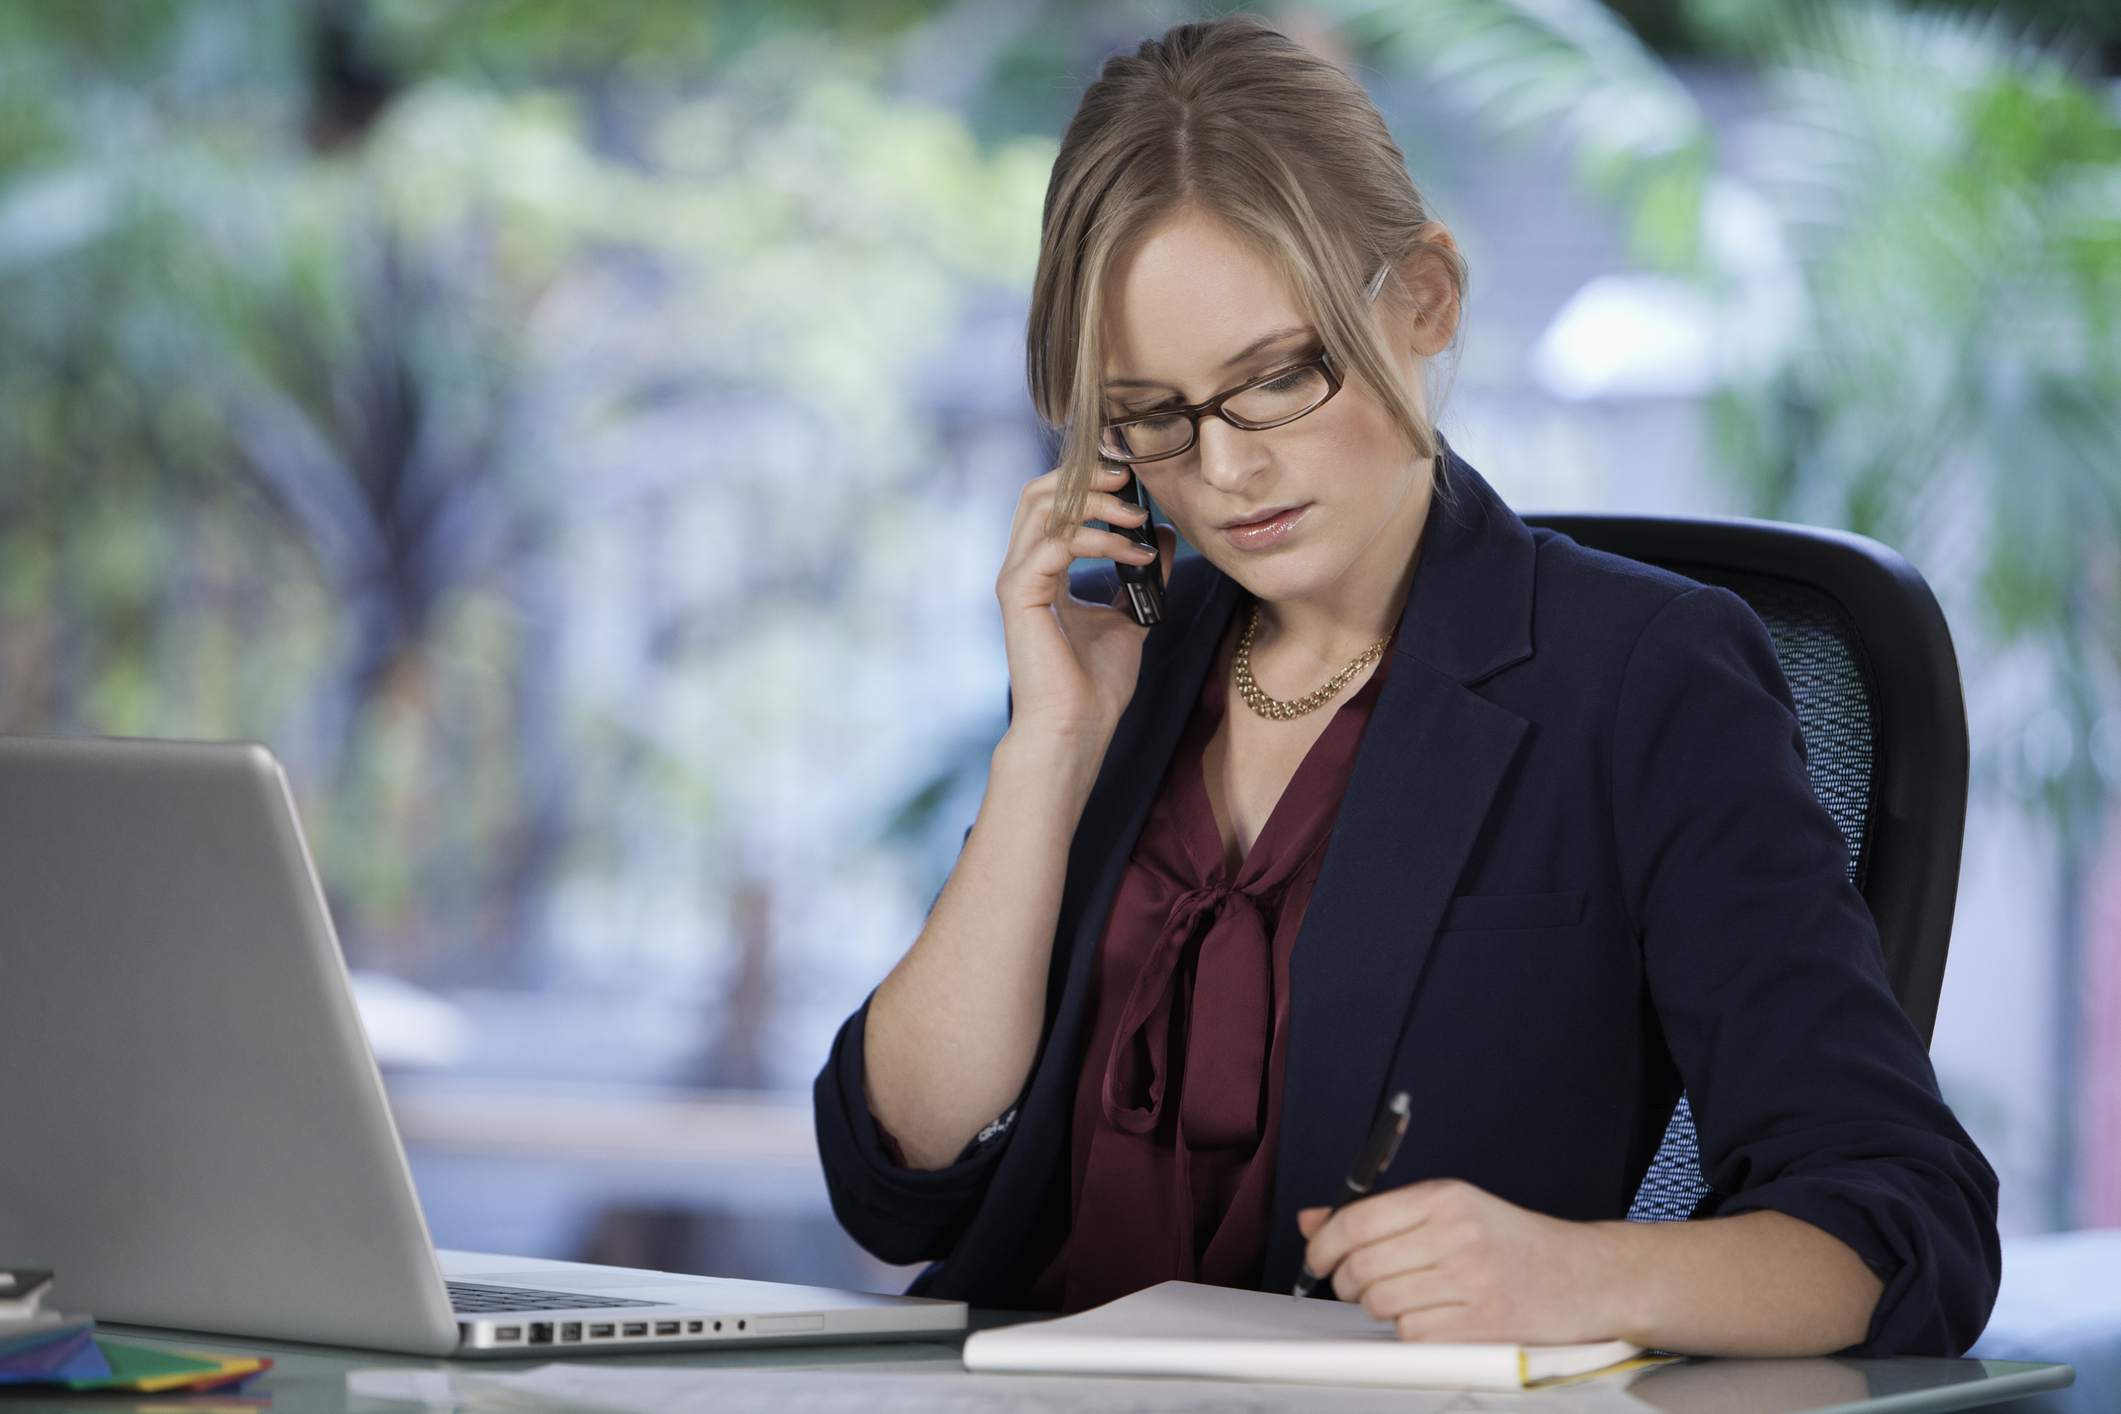 Caucasian businesswoman talking on cell phone and working